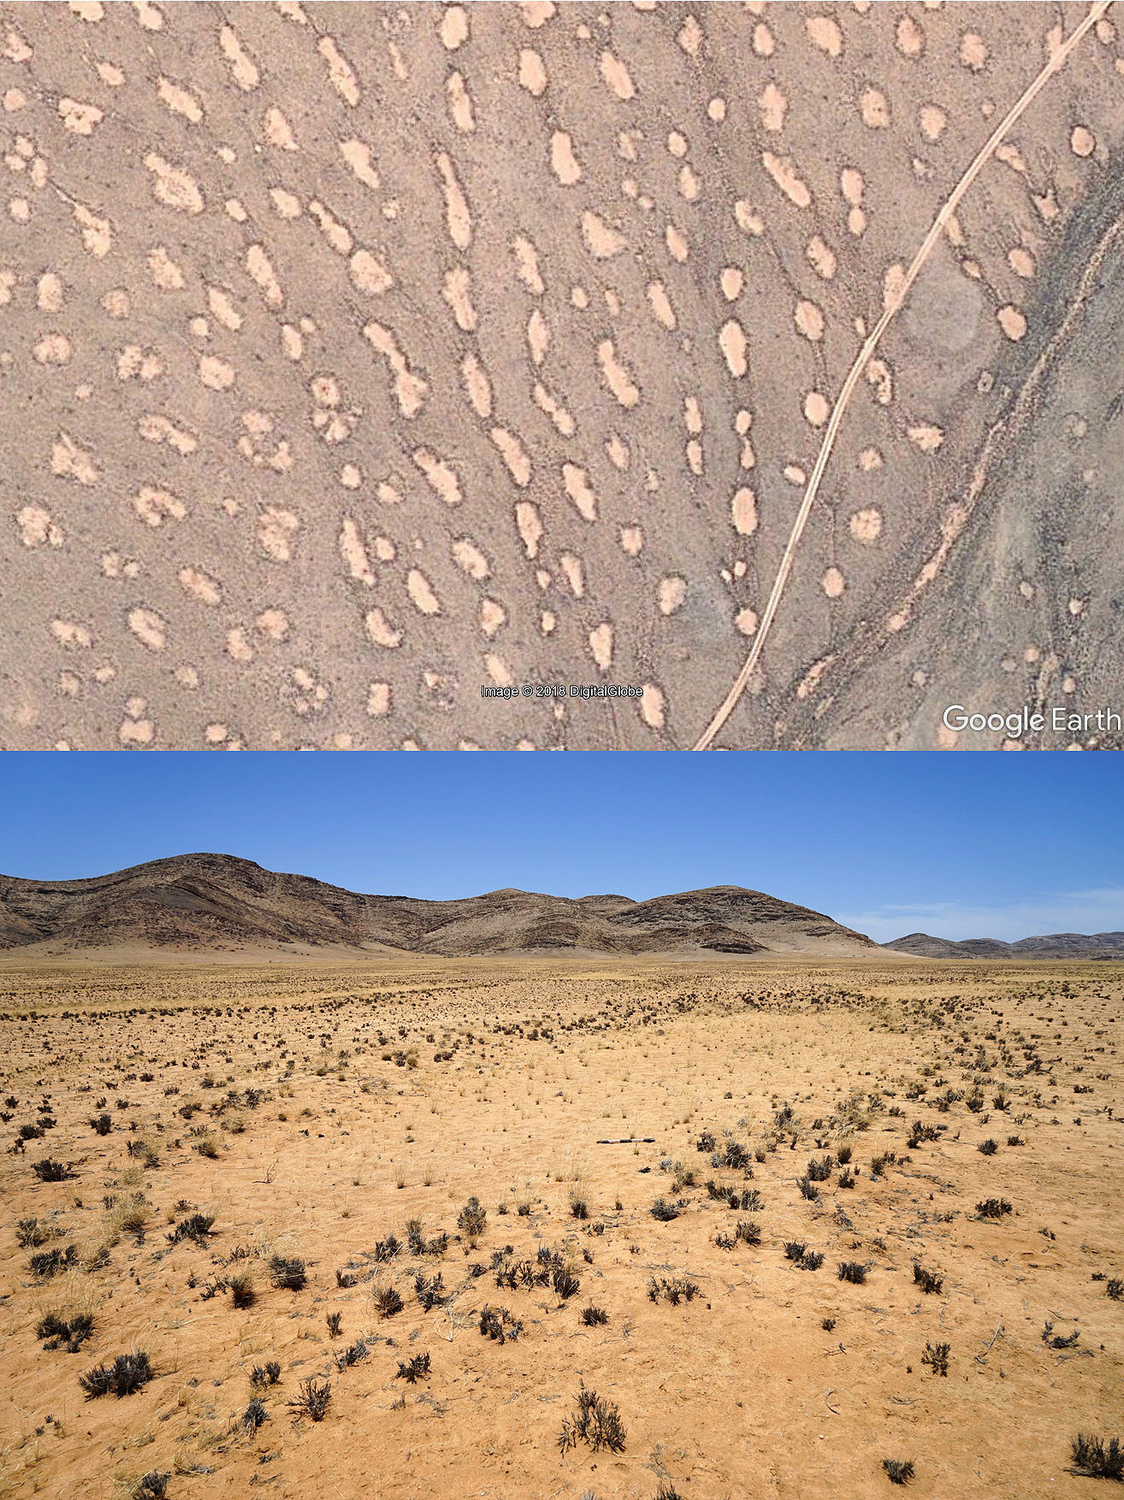 Oval-shaped mega fairy circles form a chain-like structure along a drainage line in Namibia.